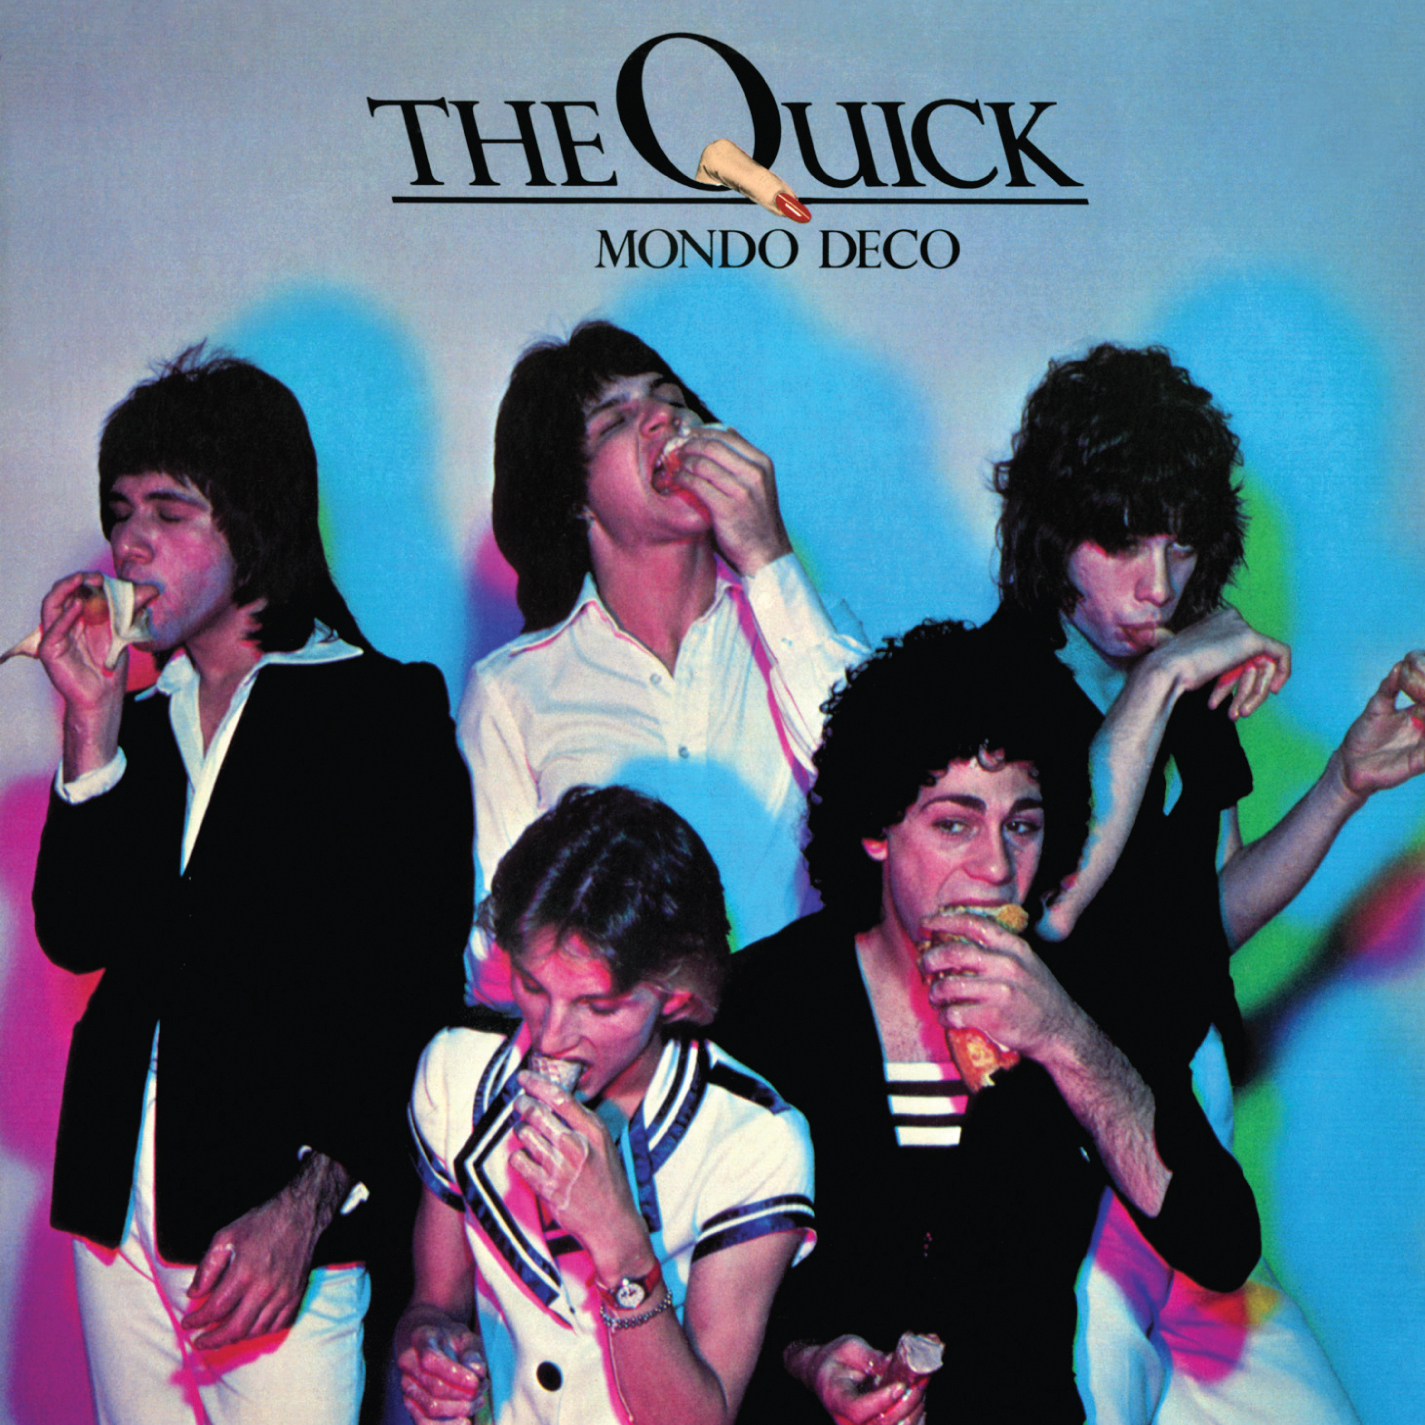 """The Quick Long Awaited Reissue """"Mondo Deco"""" (Expanded Edition) is Pure Pop from a Post Glam, Pre-Punk World, Out June 1 from Real Gone Music"""